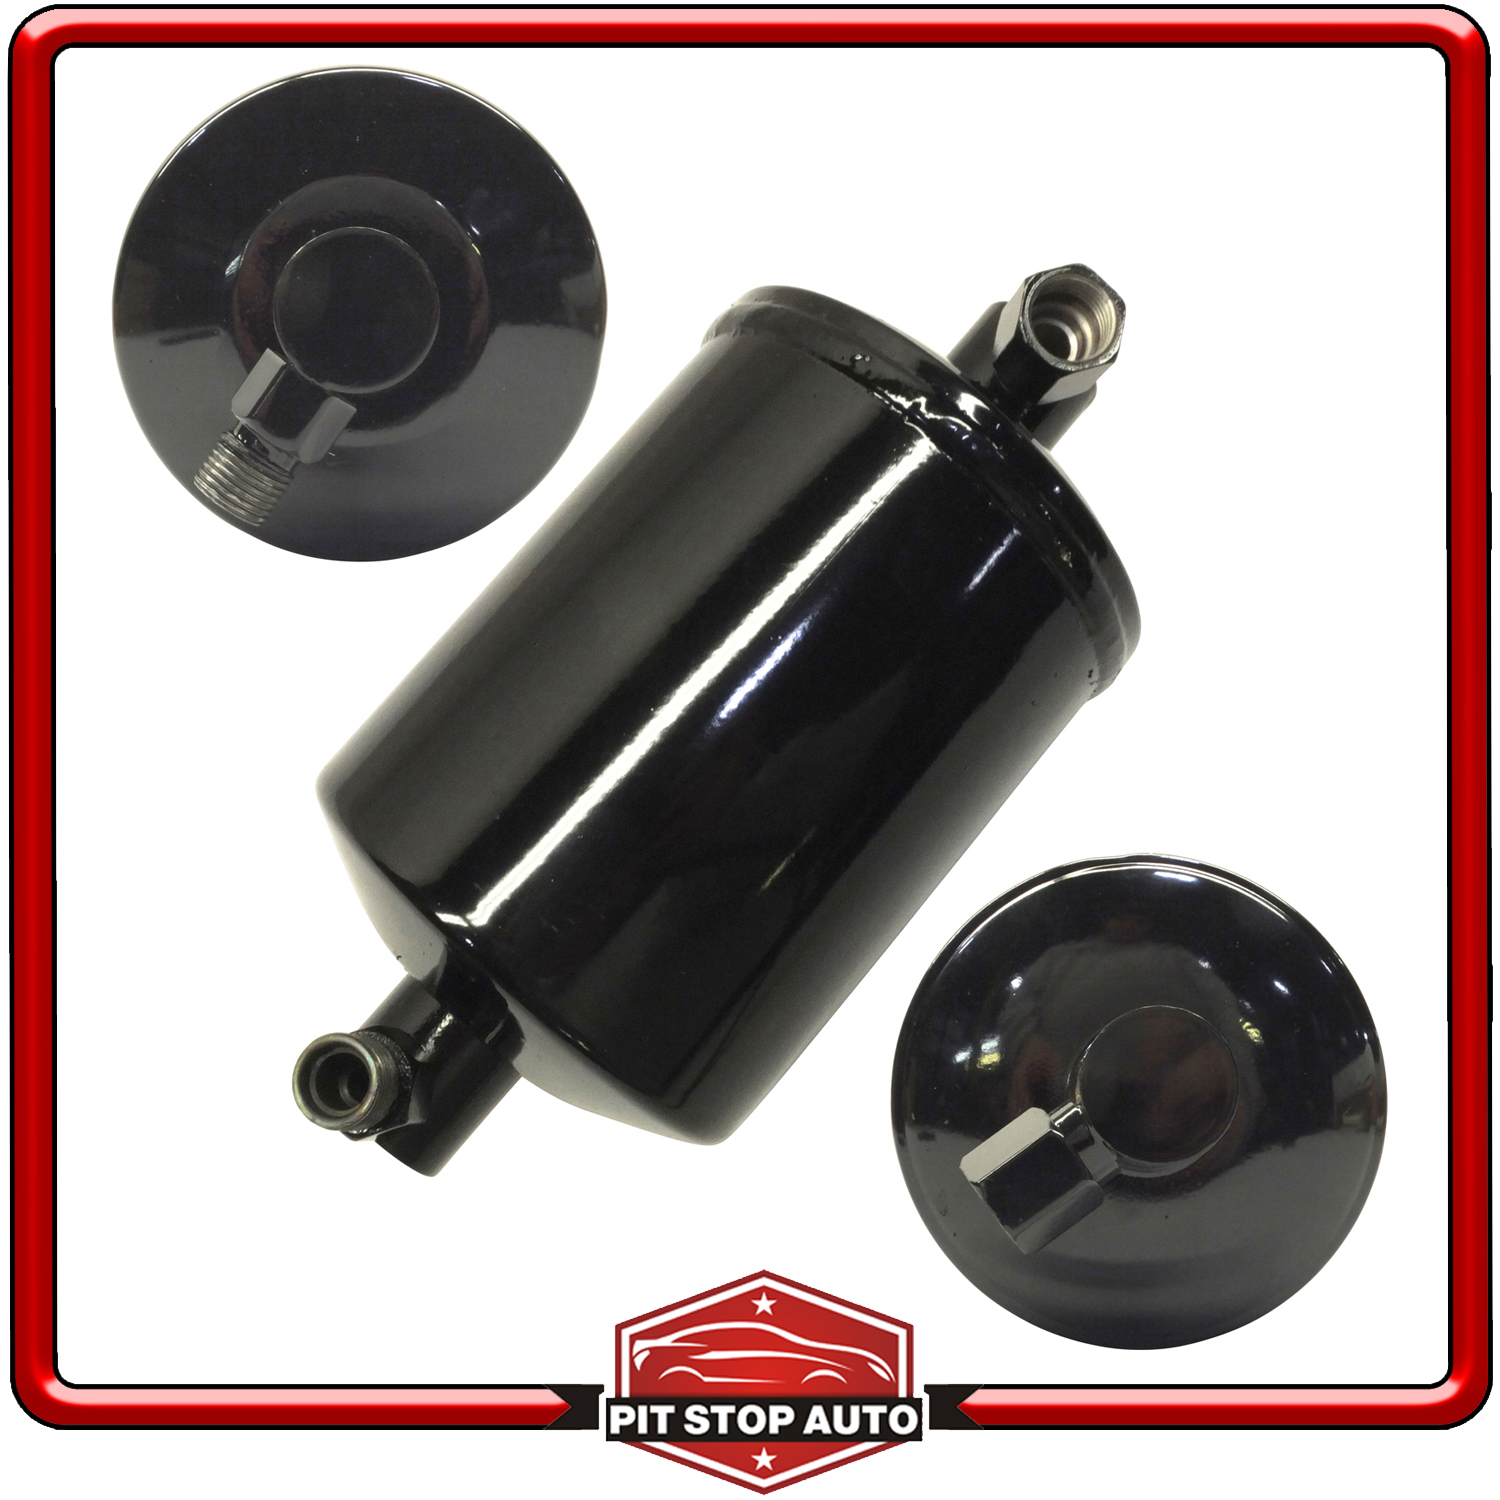 New A/C Receiver Drier RD 9131C - 1990758C2